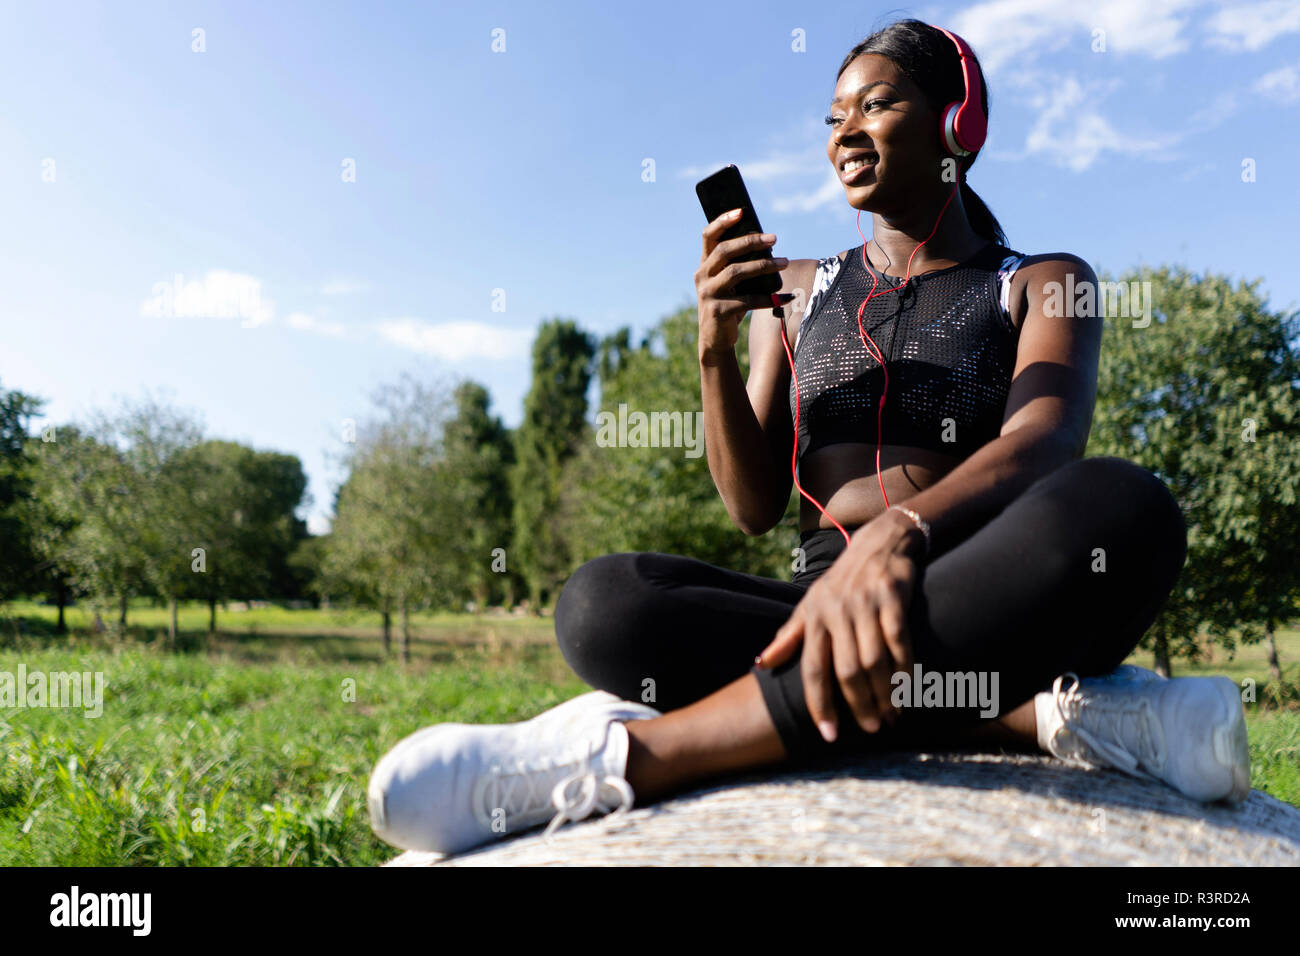 Young athlete sitting on straw bale, listening music with smartphone and headphones - Stock Image